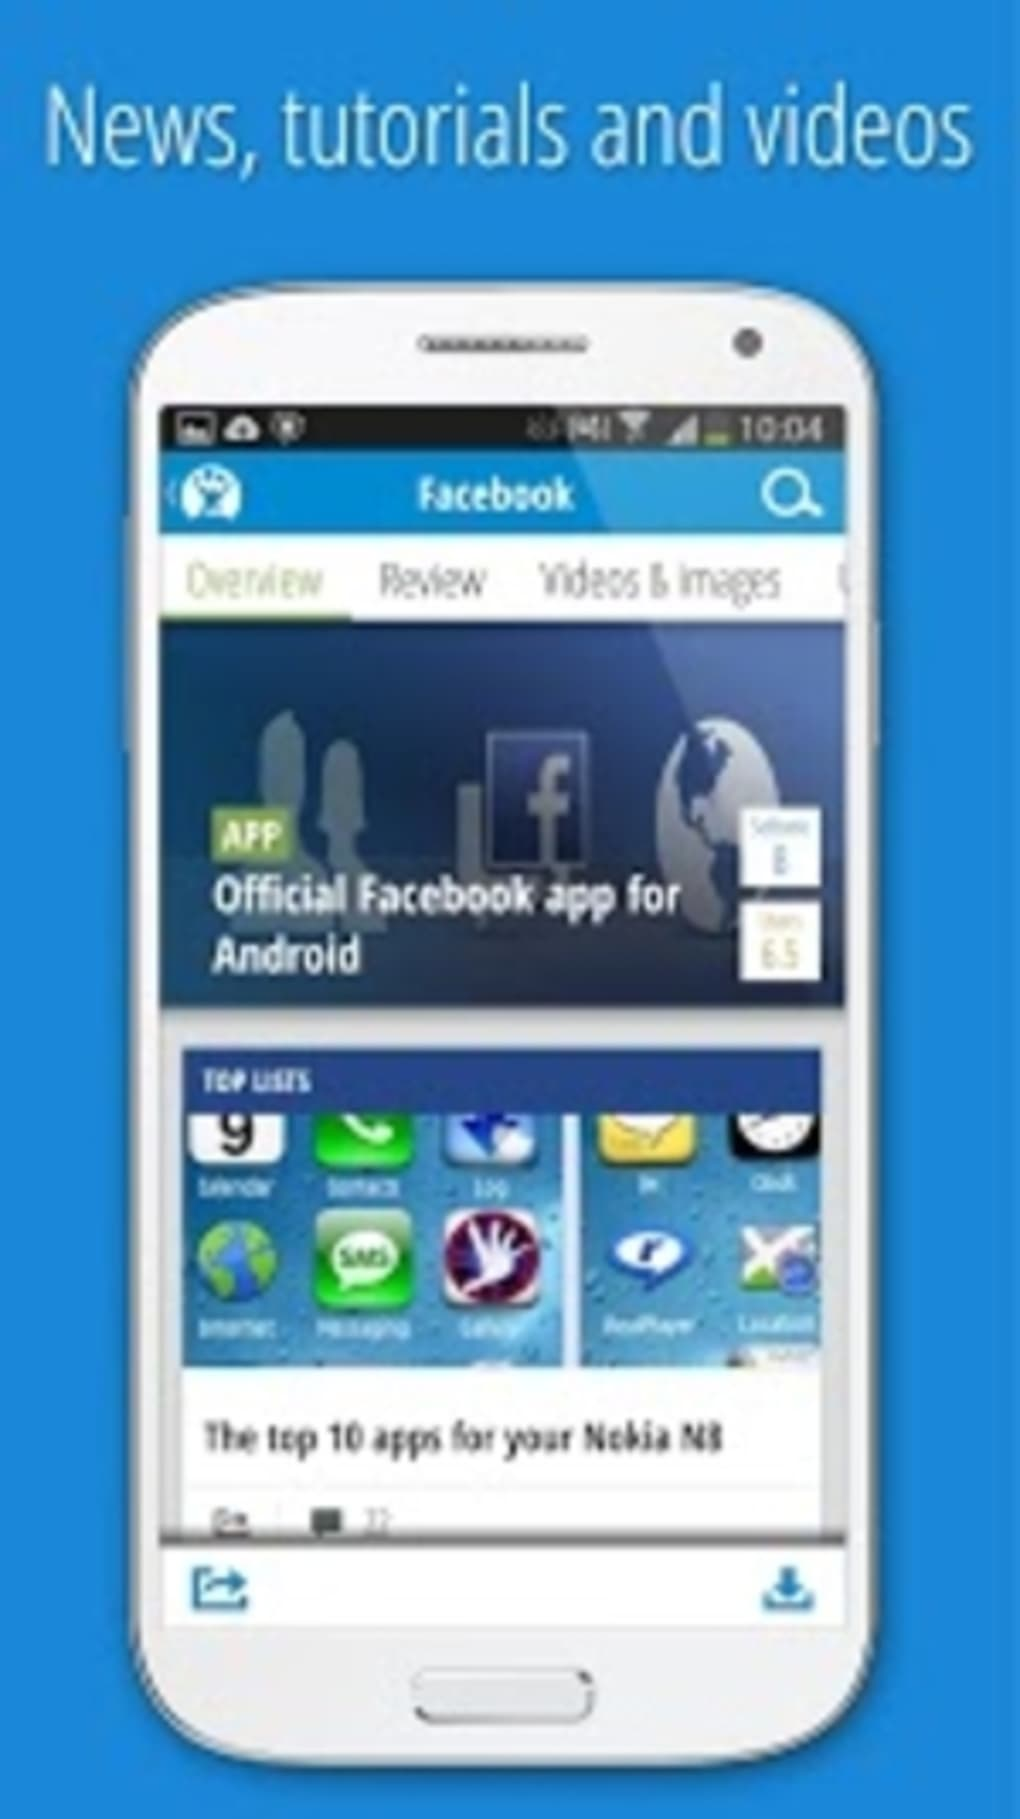 Softonic for Android APK for Android - Download